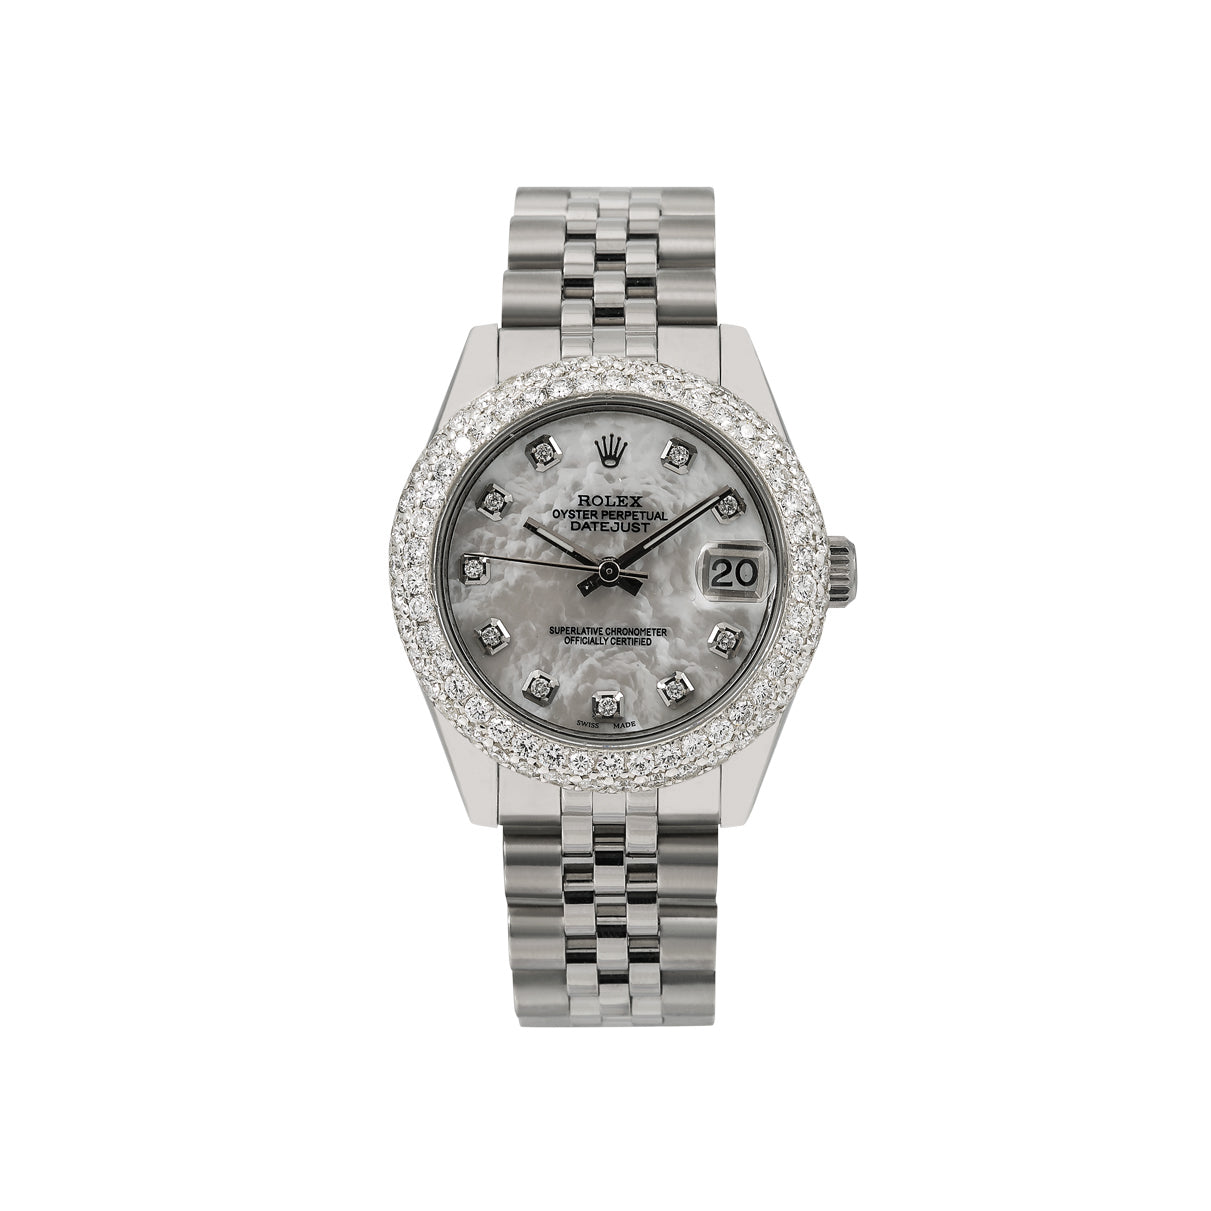 Rolex Lady-Datejust Diamond Watch, 178240 31mm, White Diamond Dial With Stainless Steel Jubilee Bracelet